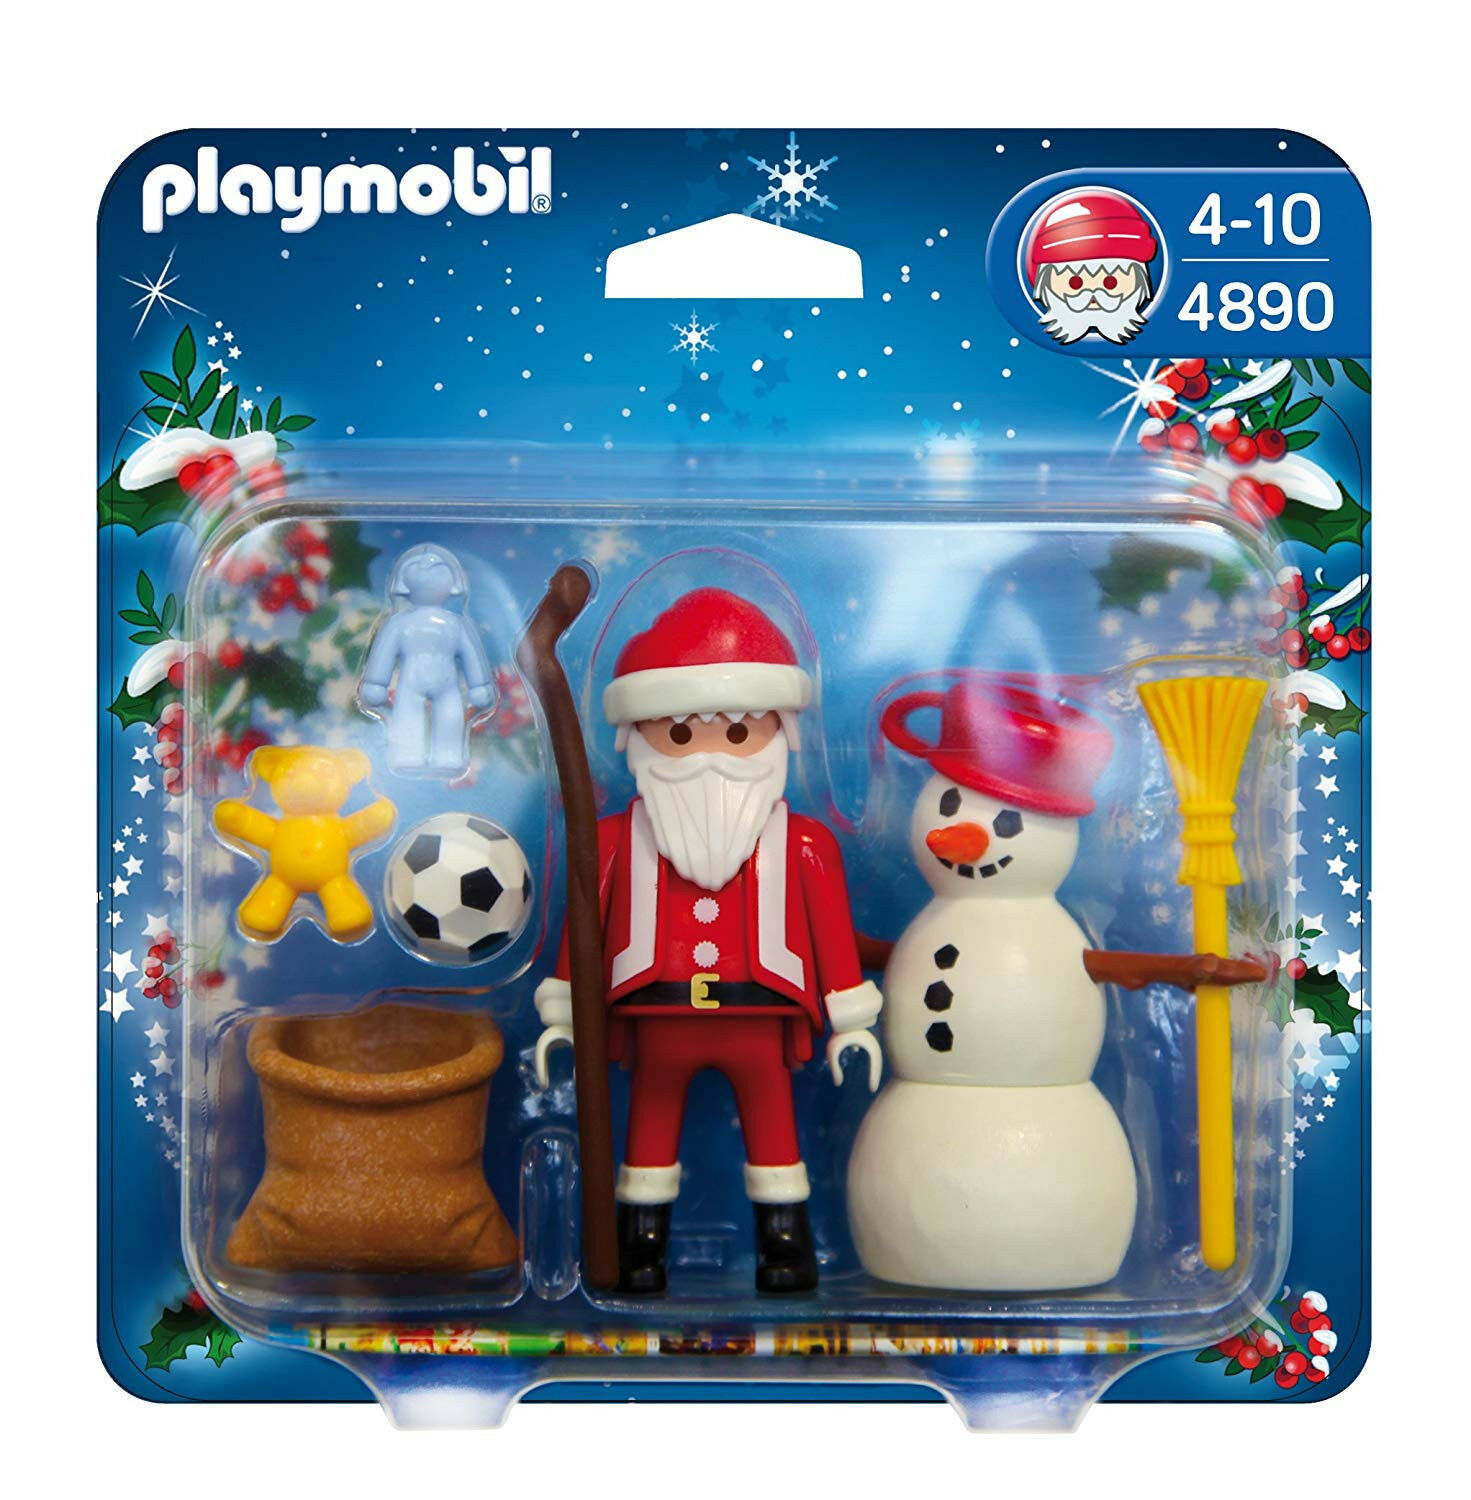 Playmobil 4890 Christmas Santa Claus with Snowman